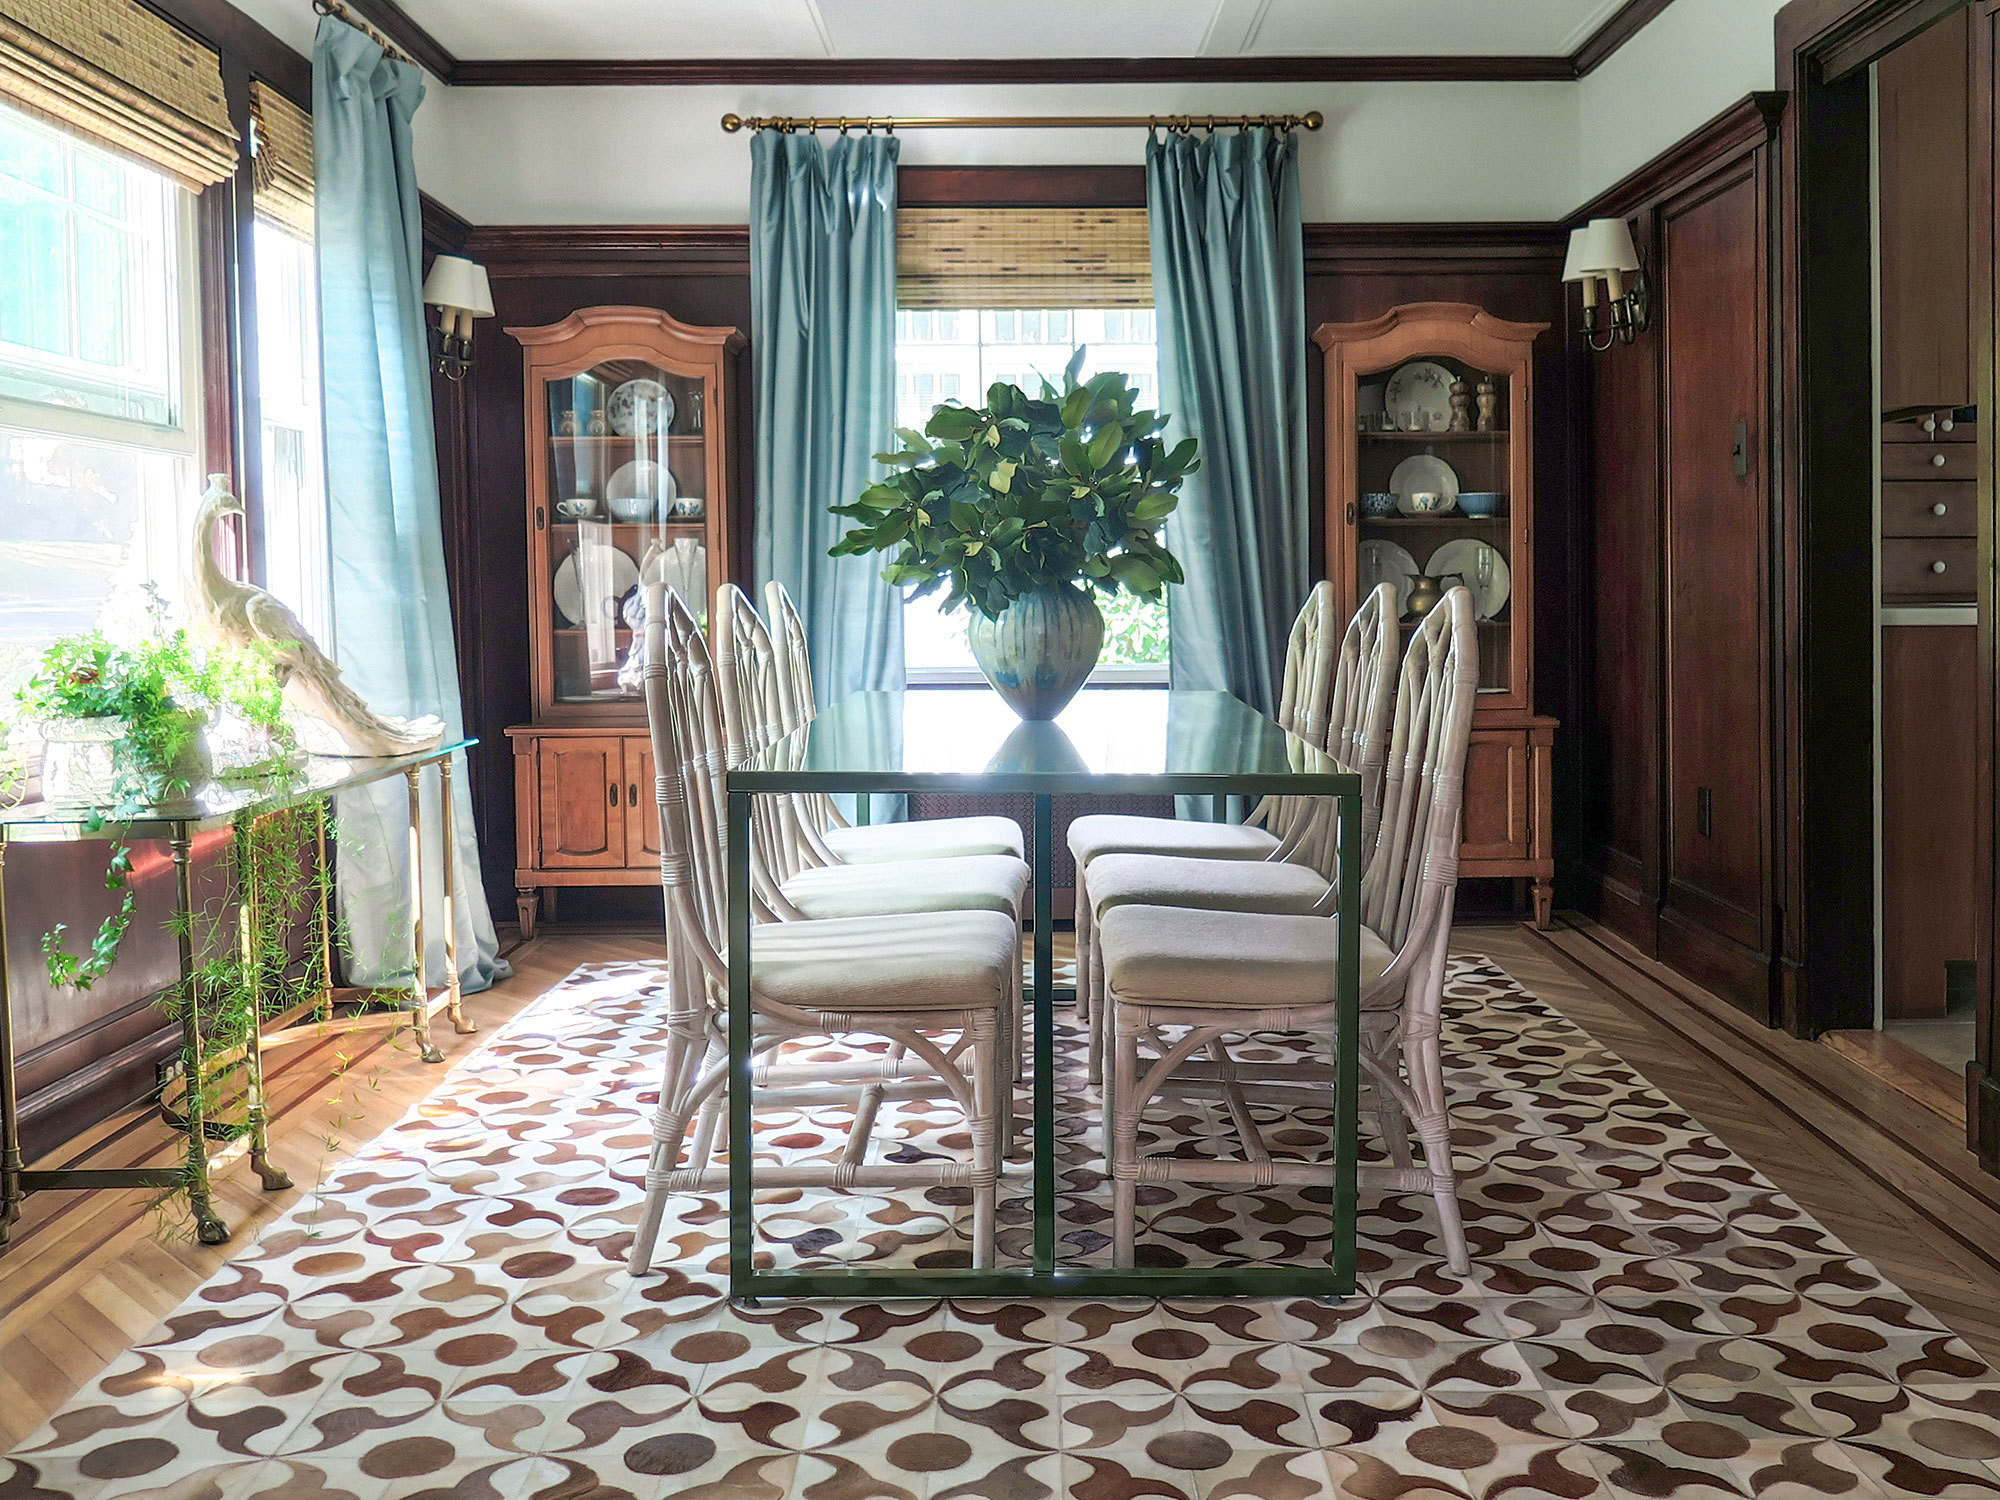 Jill Danyelle of Verdoier gave this 1920s home in South Orange, New Jersey, a modern-day facelift, while preserving its historic charms. In the dining room, wood-paneled walls are balanced by a streamlined table from Blu Dot, a patterned hide rug, and a fanciful faux Peacock sculpture.